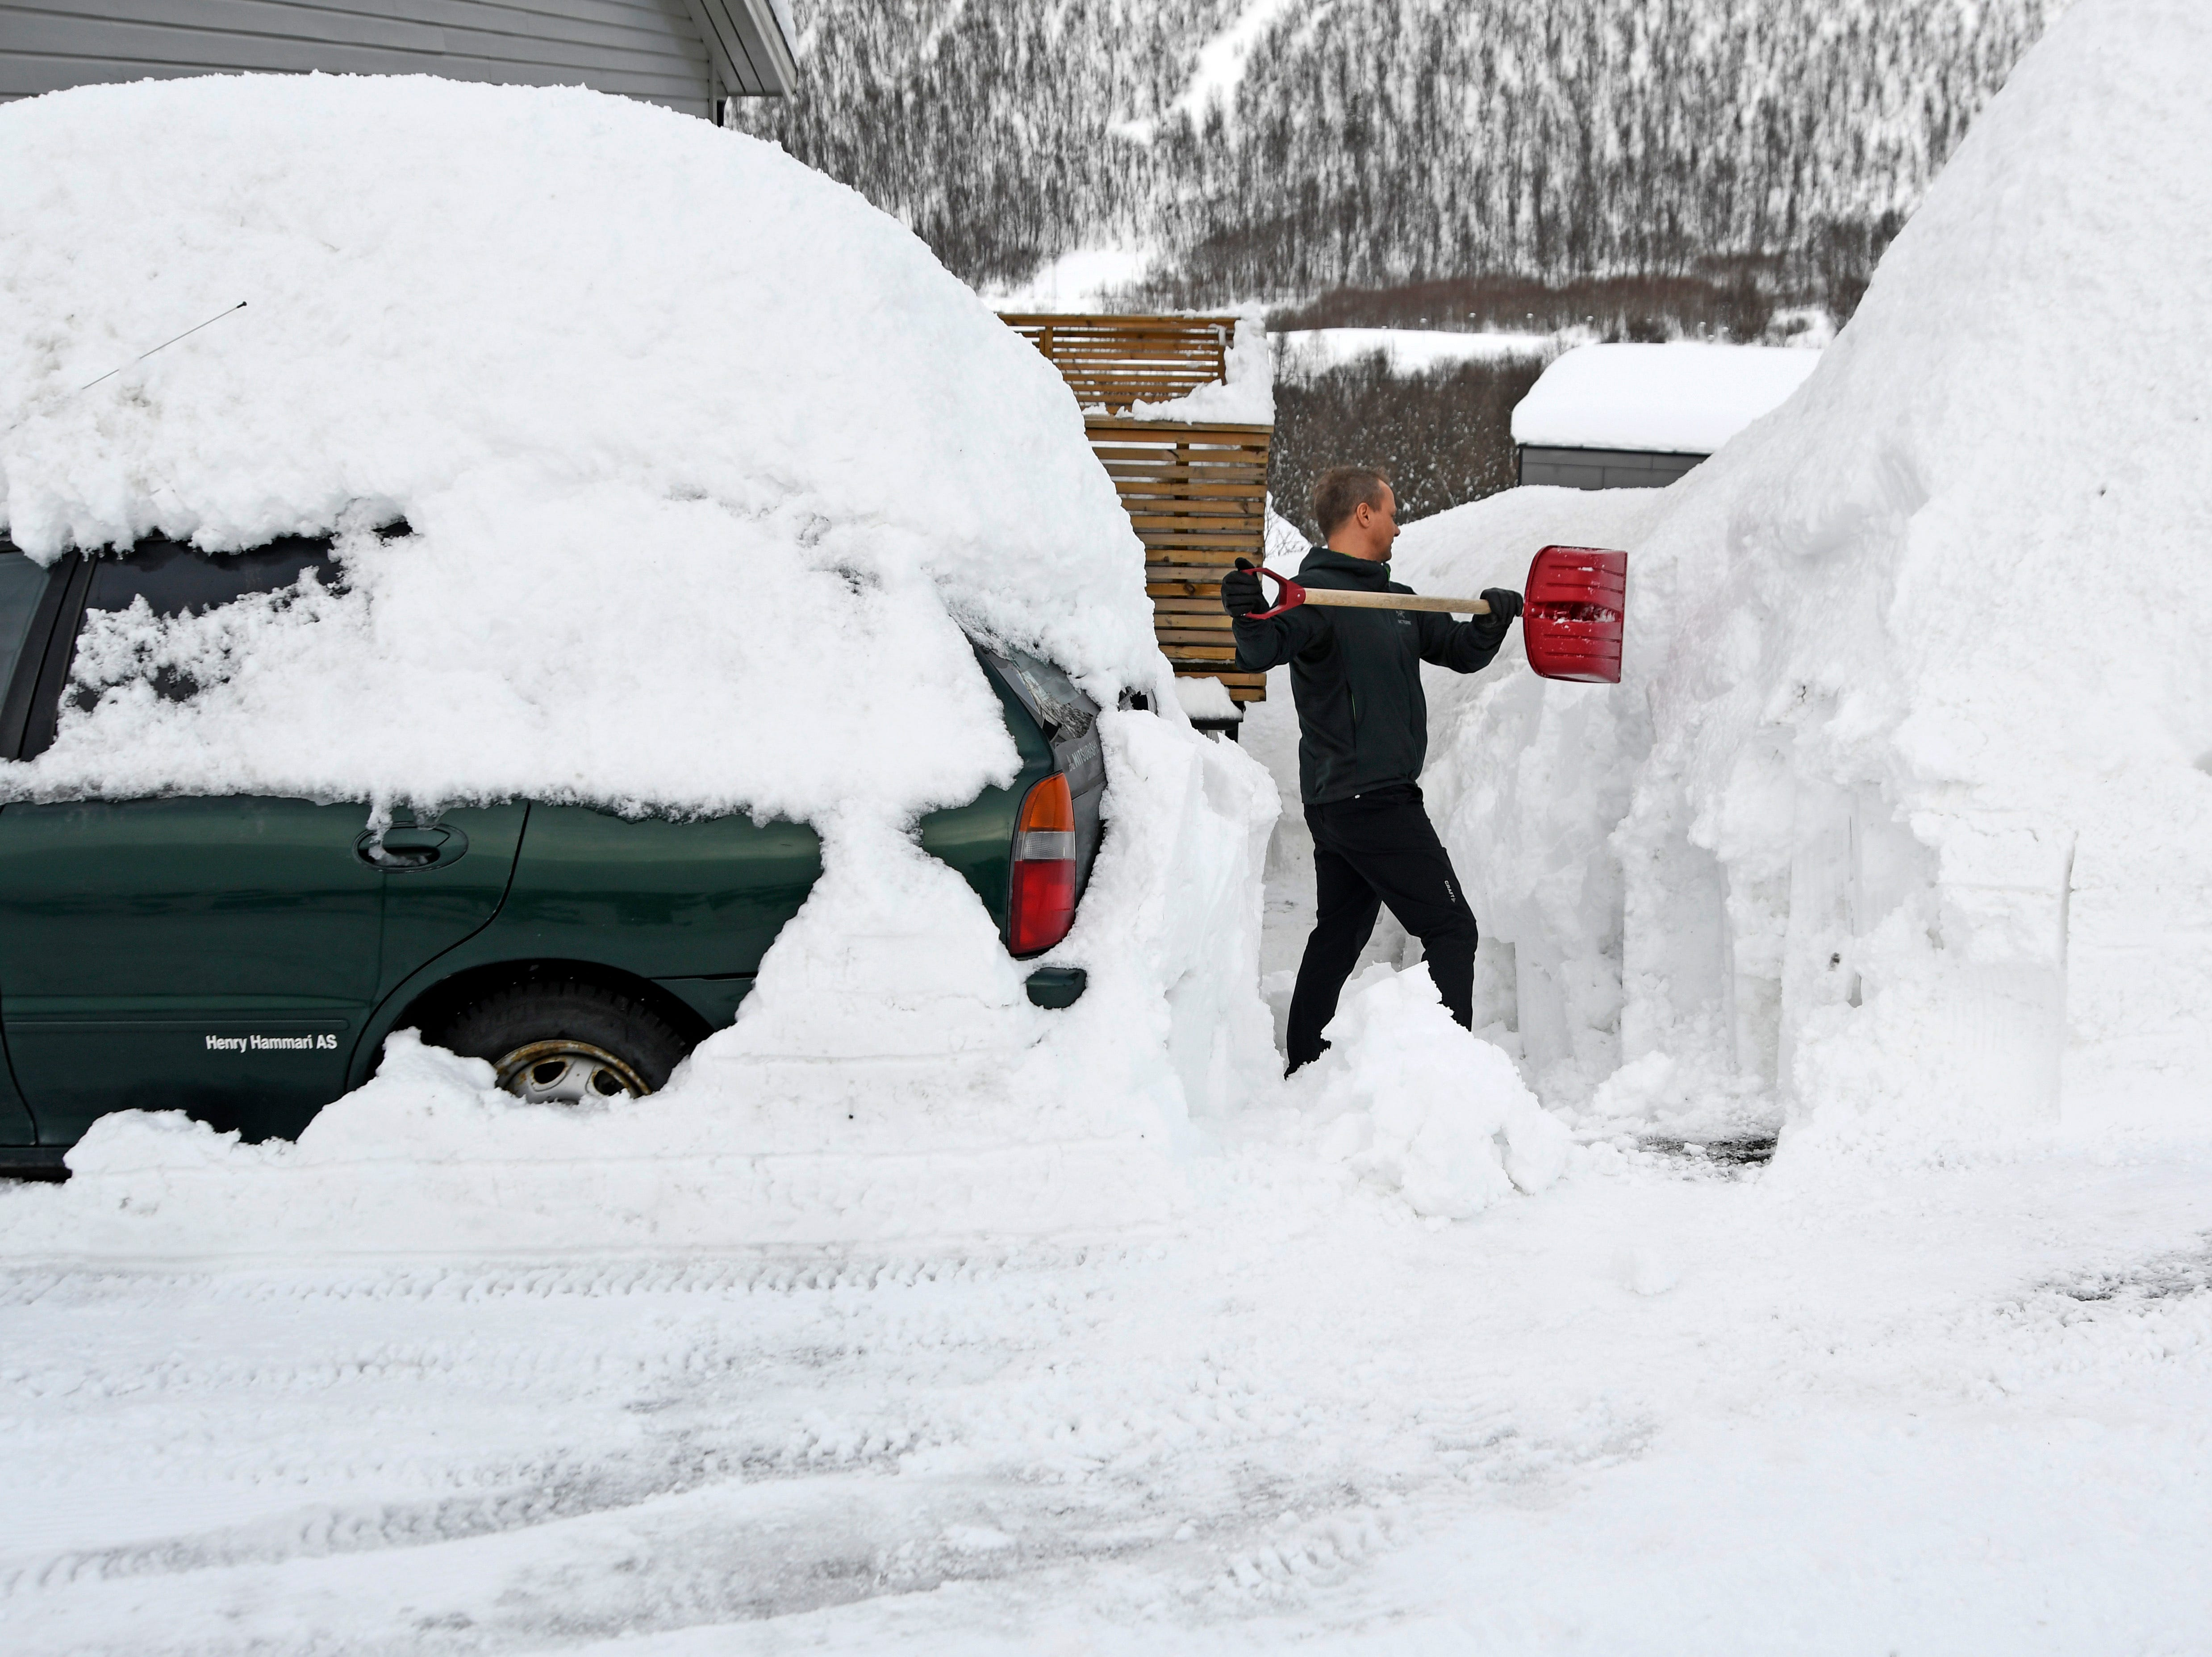 Hans Otto Larsen shovels snow in front of his house in Tromso, Norway, Monday April 1, 2019. Huge amounts of snow have created chaos in the northern parts of Norway.